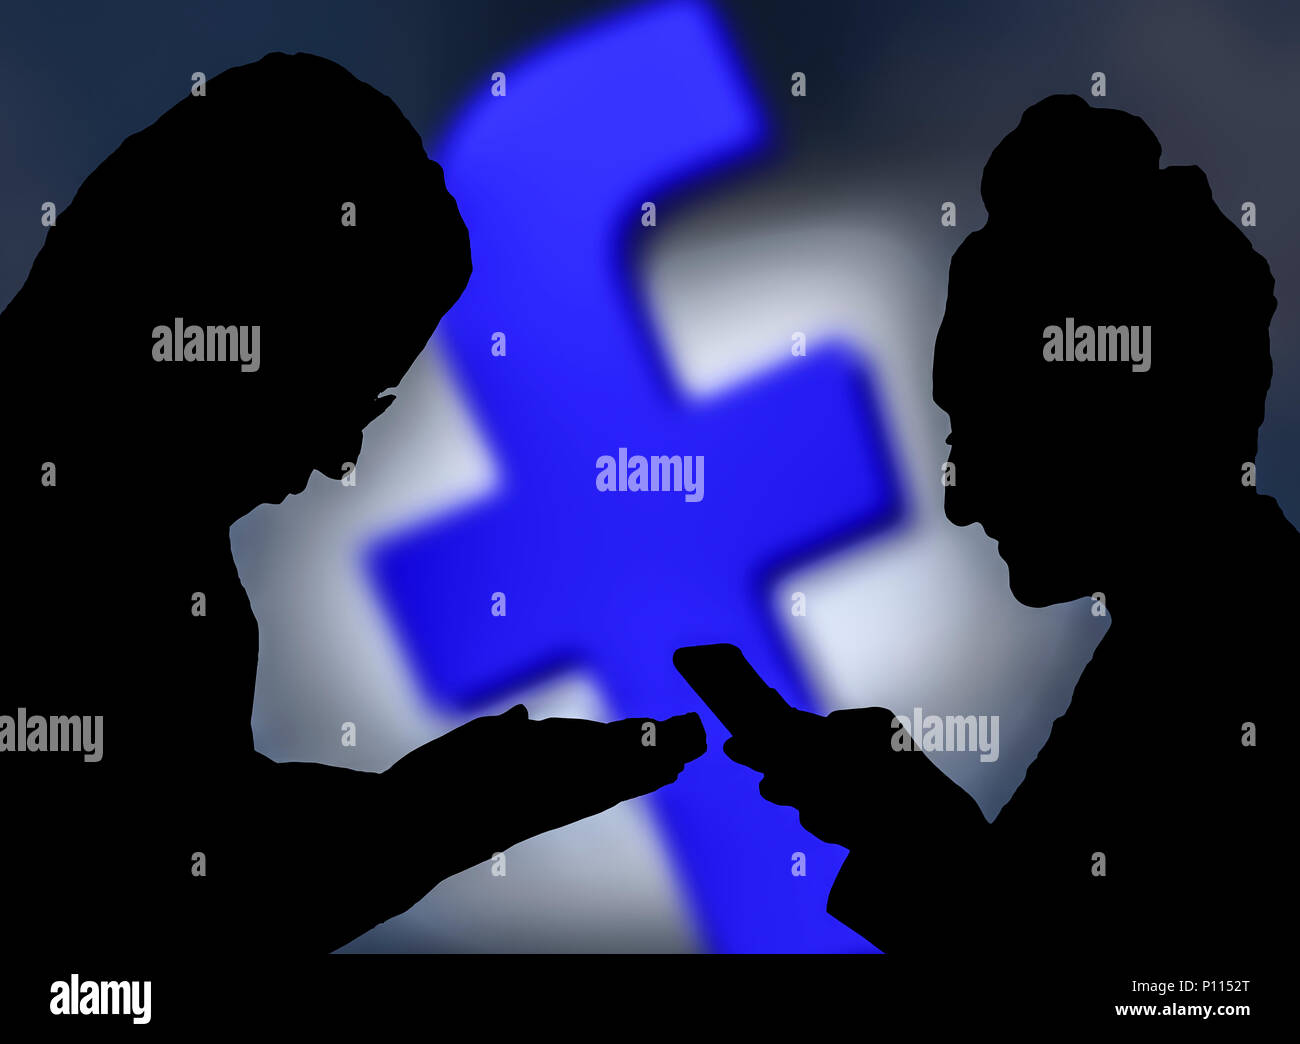 Silhouettes of a couple of people using the Facebook app on smartphones. 2 people chatting and meeting on Facebook. - Stock Image